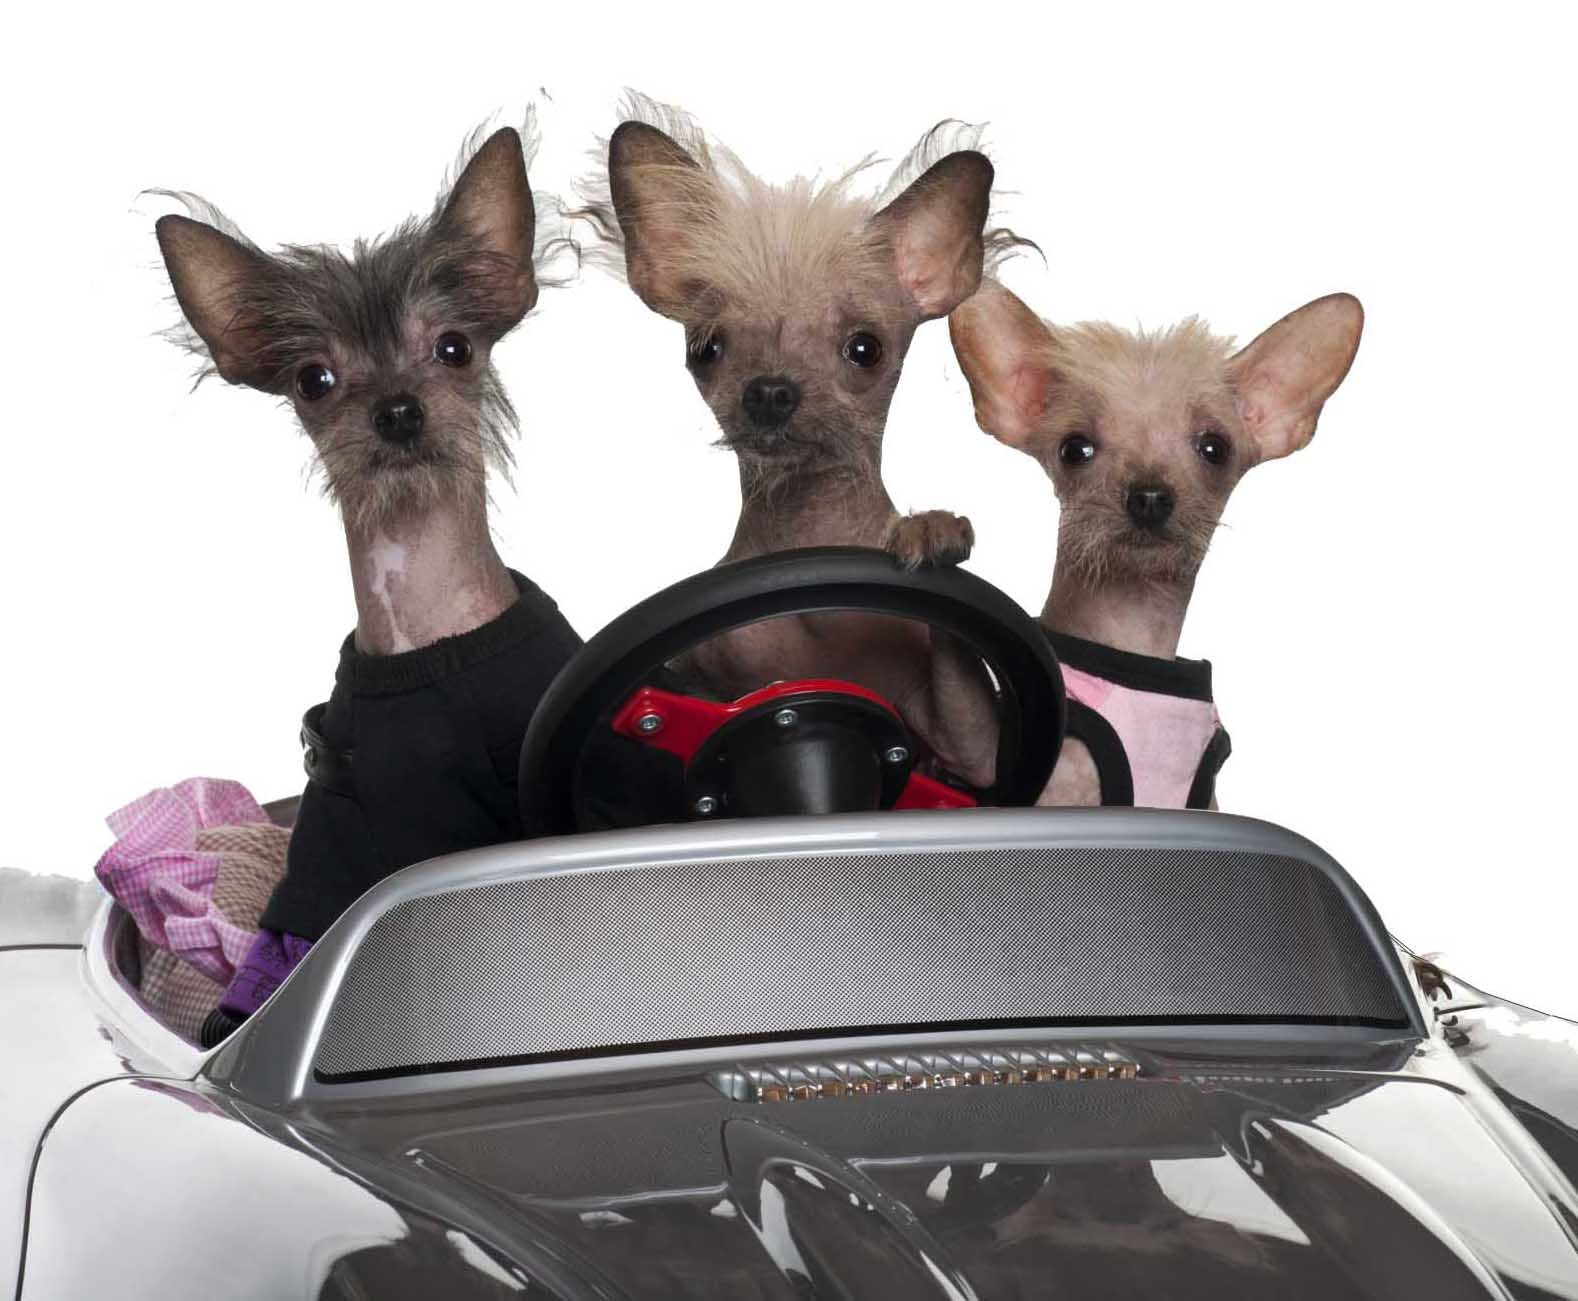 Pet Taxi Amarillo 3 Tiny Chihuahuas Driving A Car Pettaxi Pet